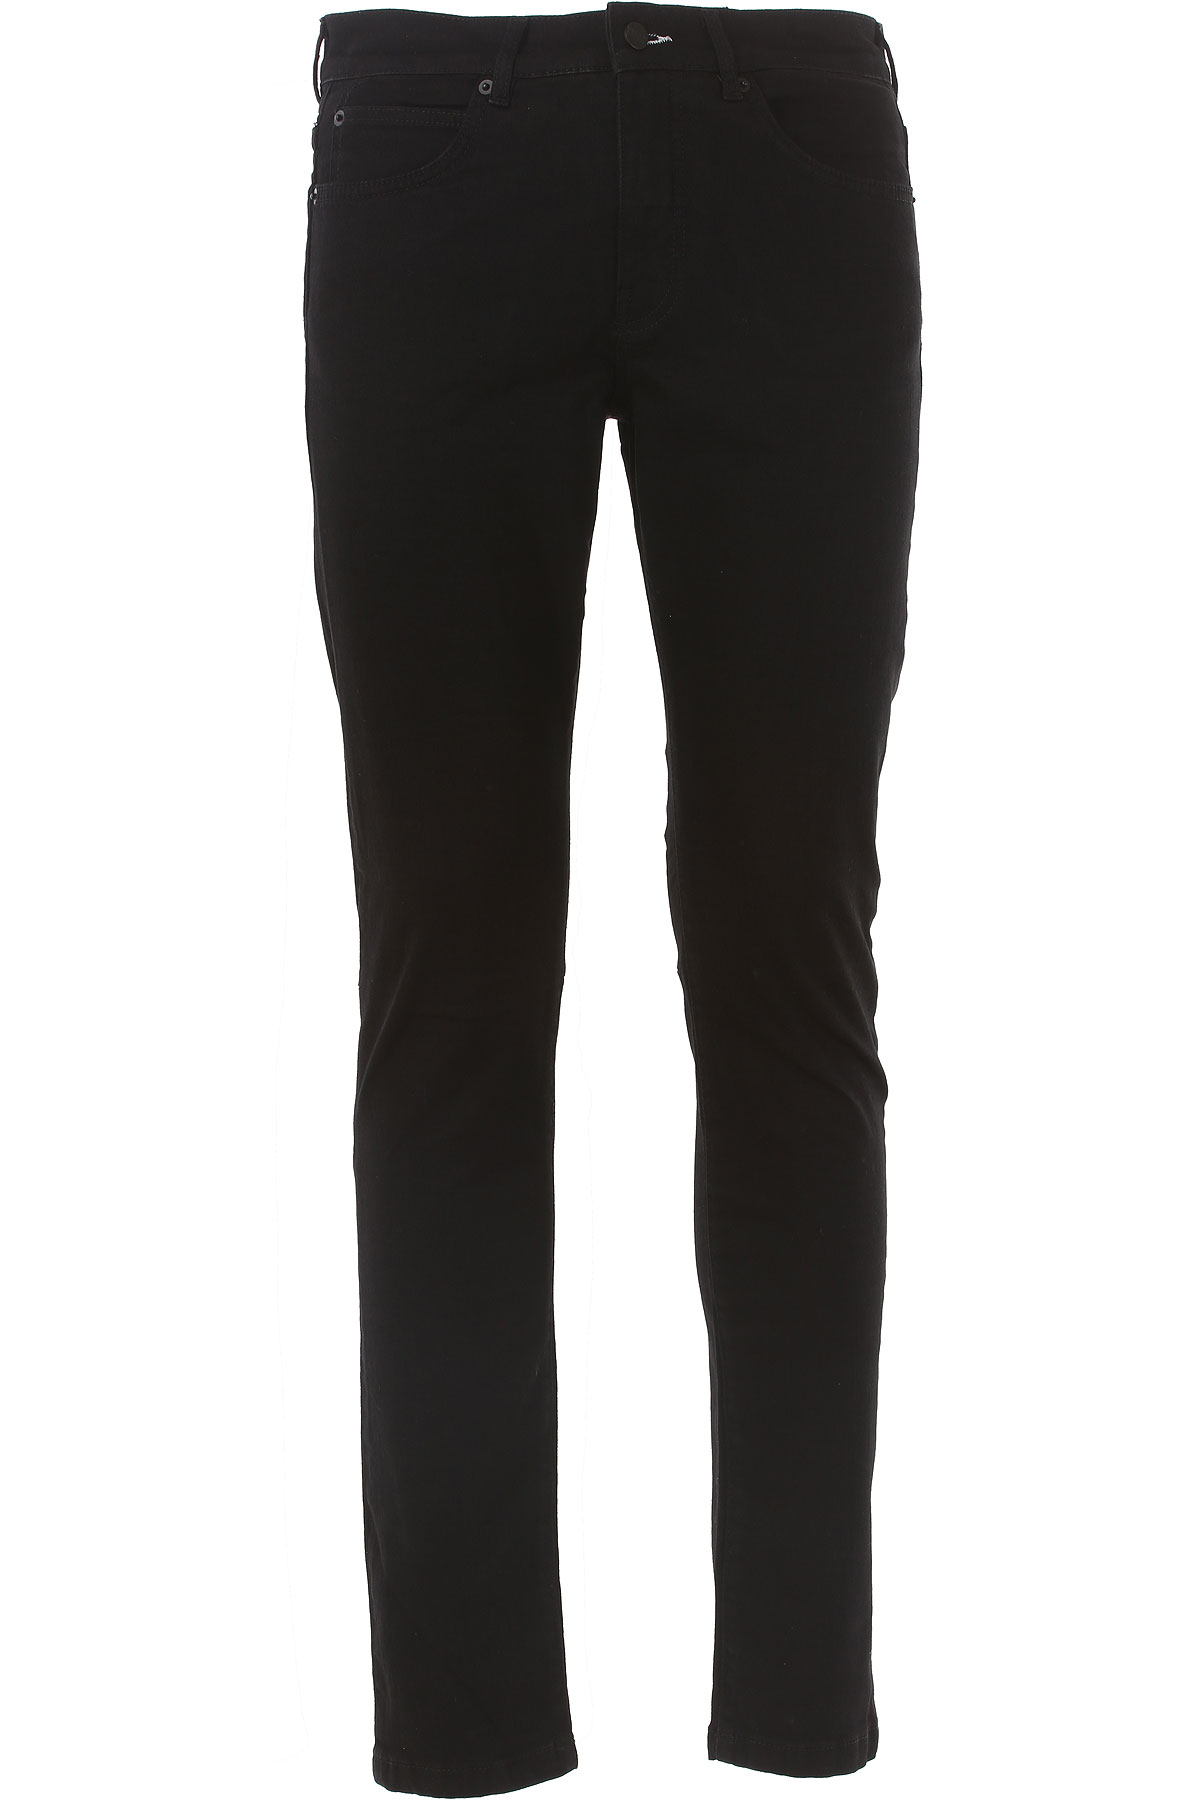 Alexander McQueen McQ Jeans On Sale in Outlet, Black, Cotton, 2017, 31 35